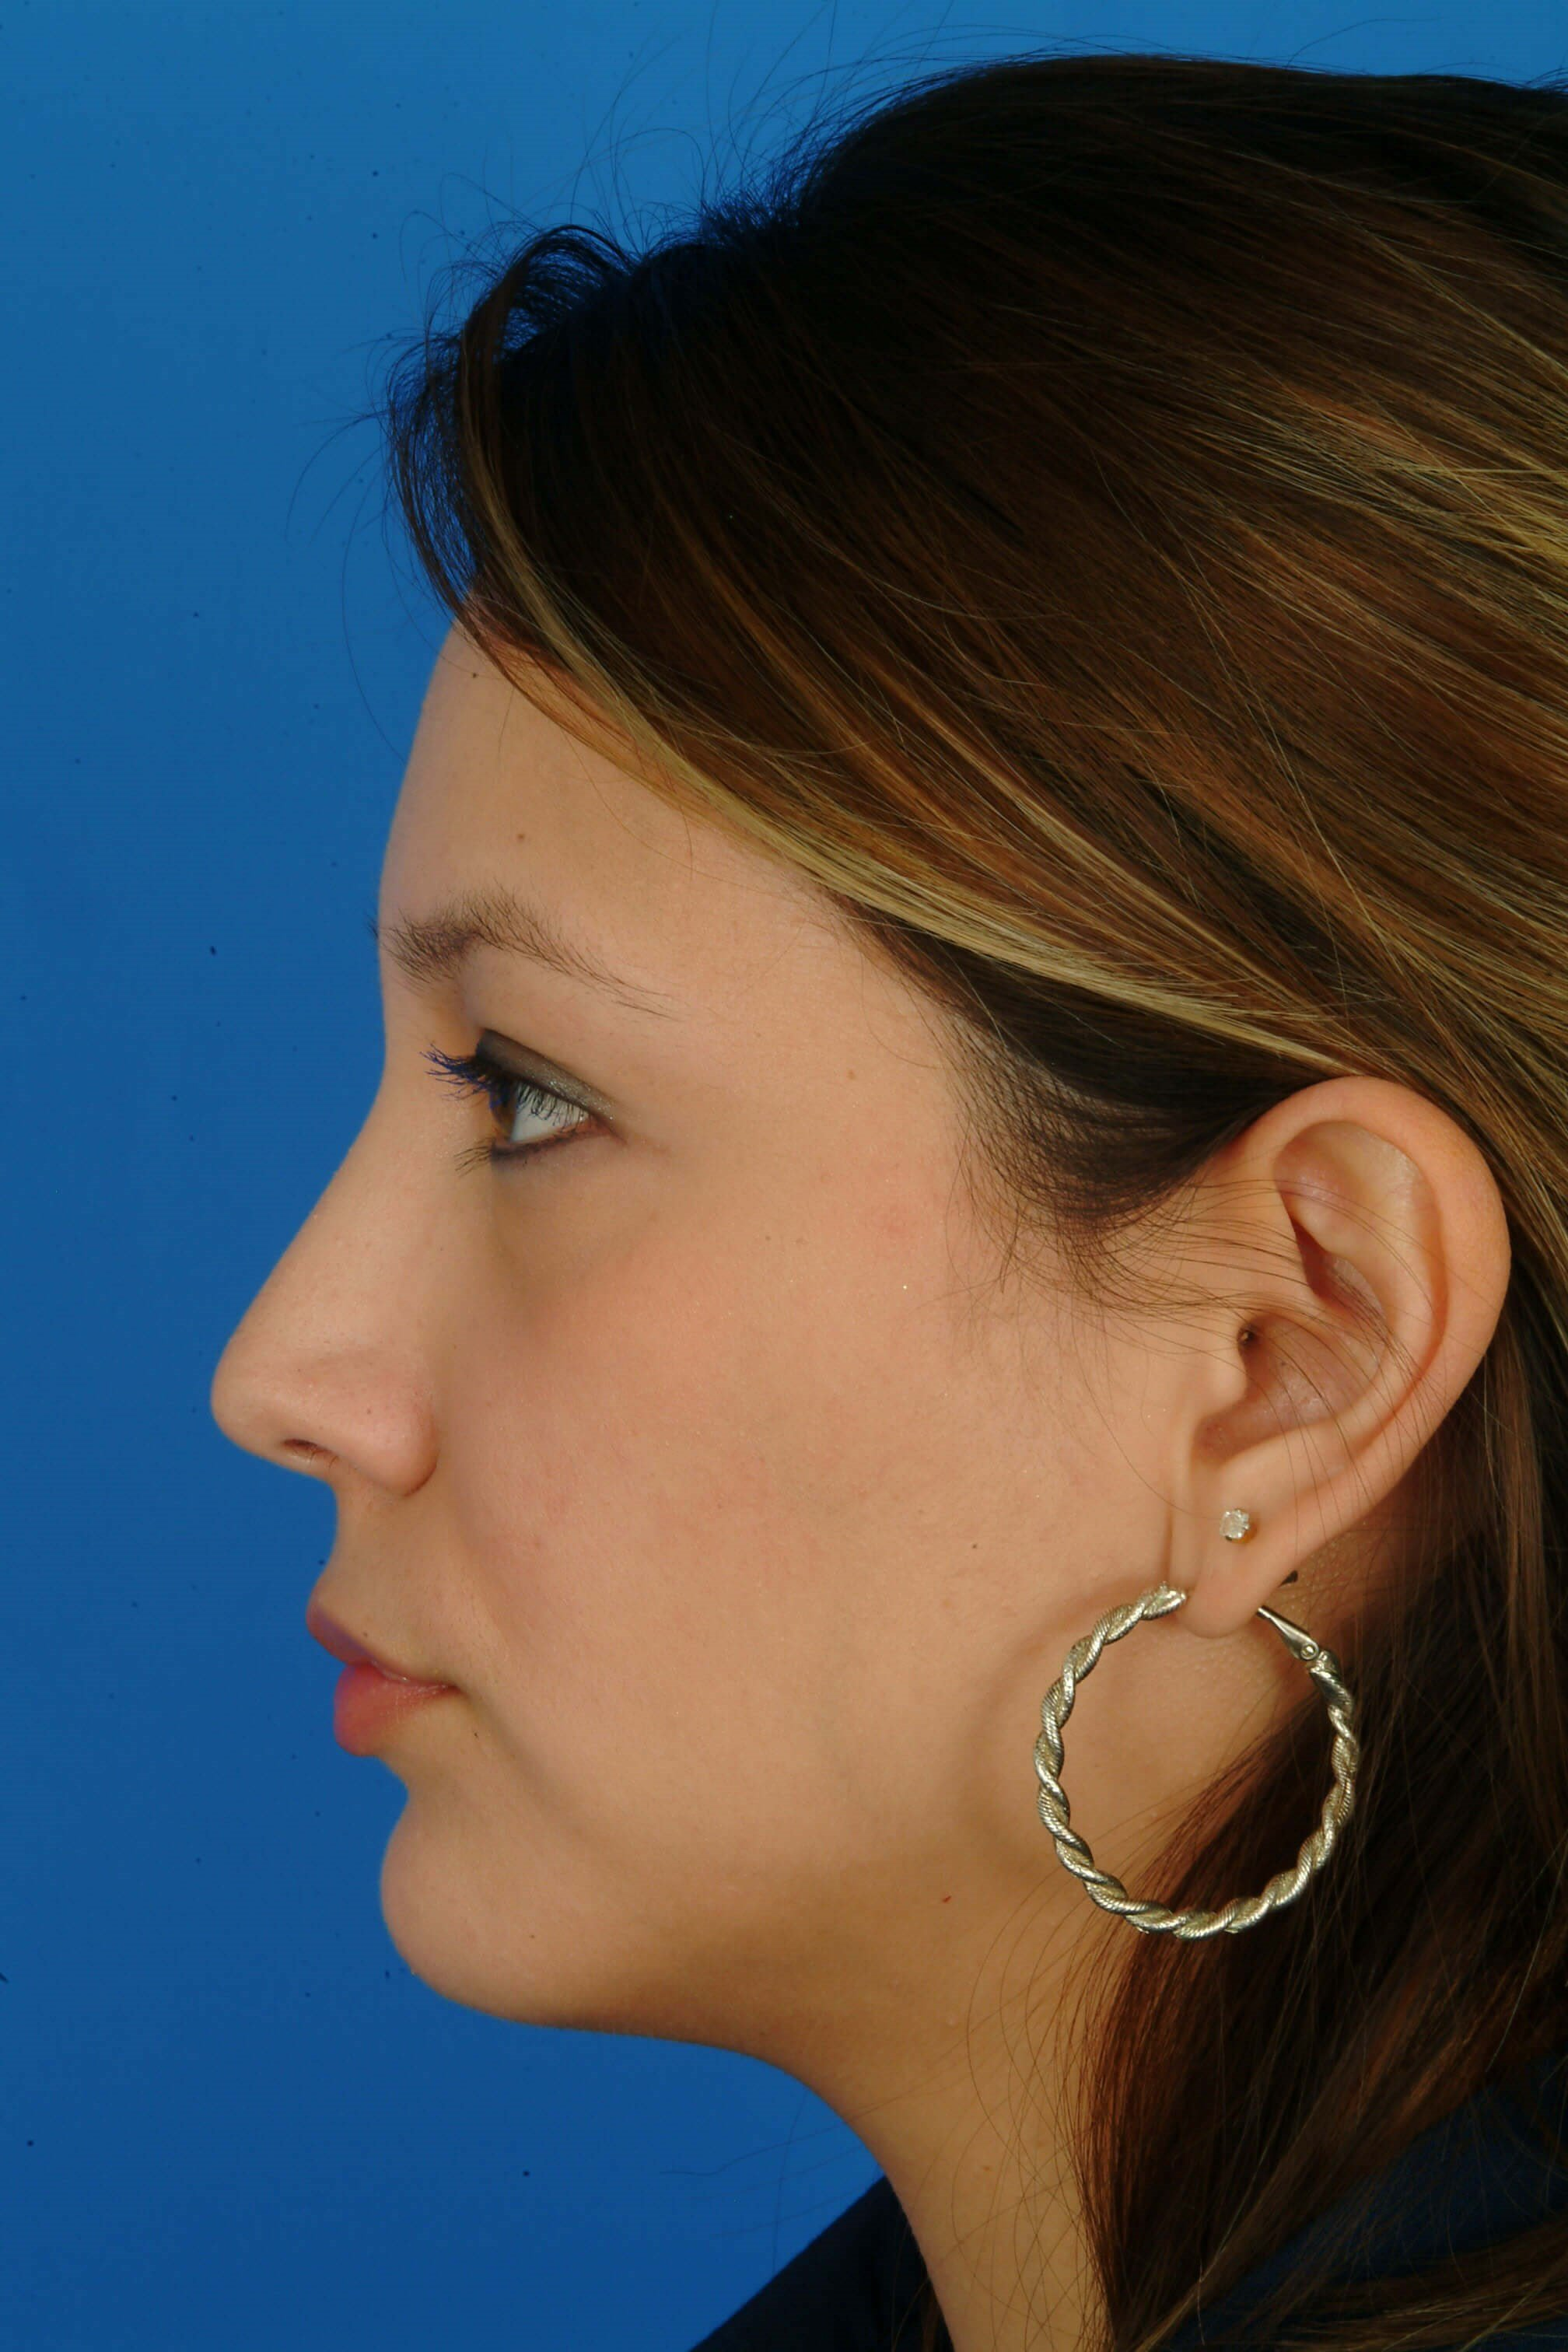 Profile View 8 mo Post-Op Rhinoplasty